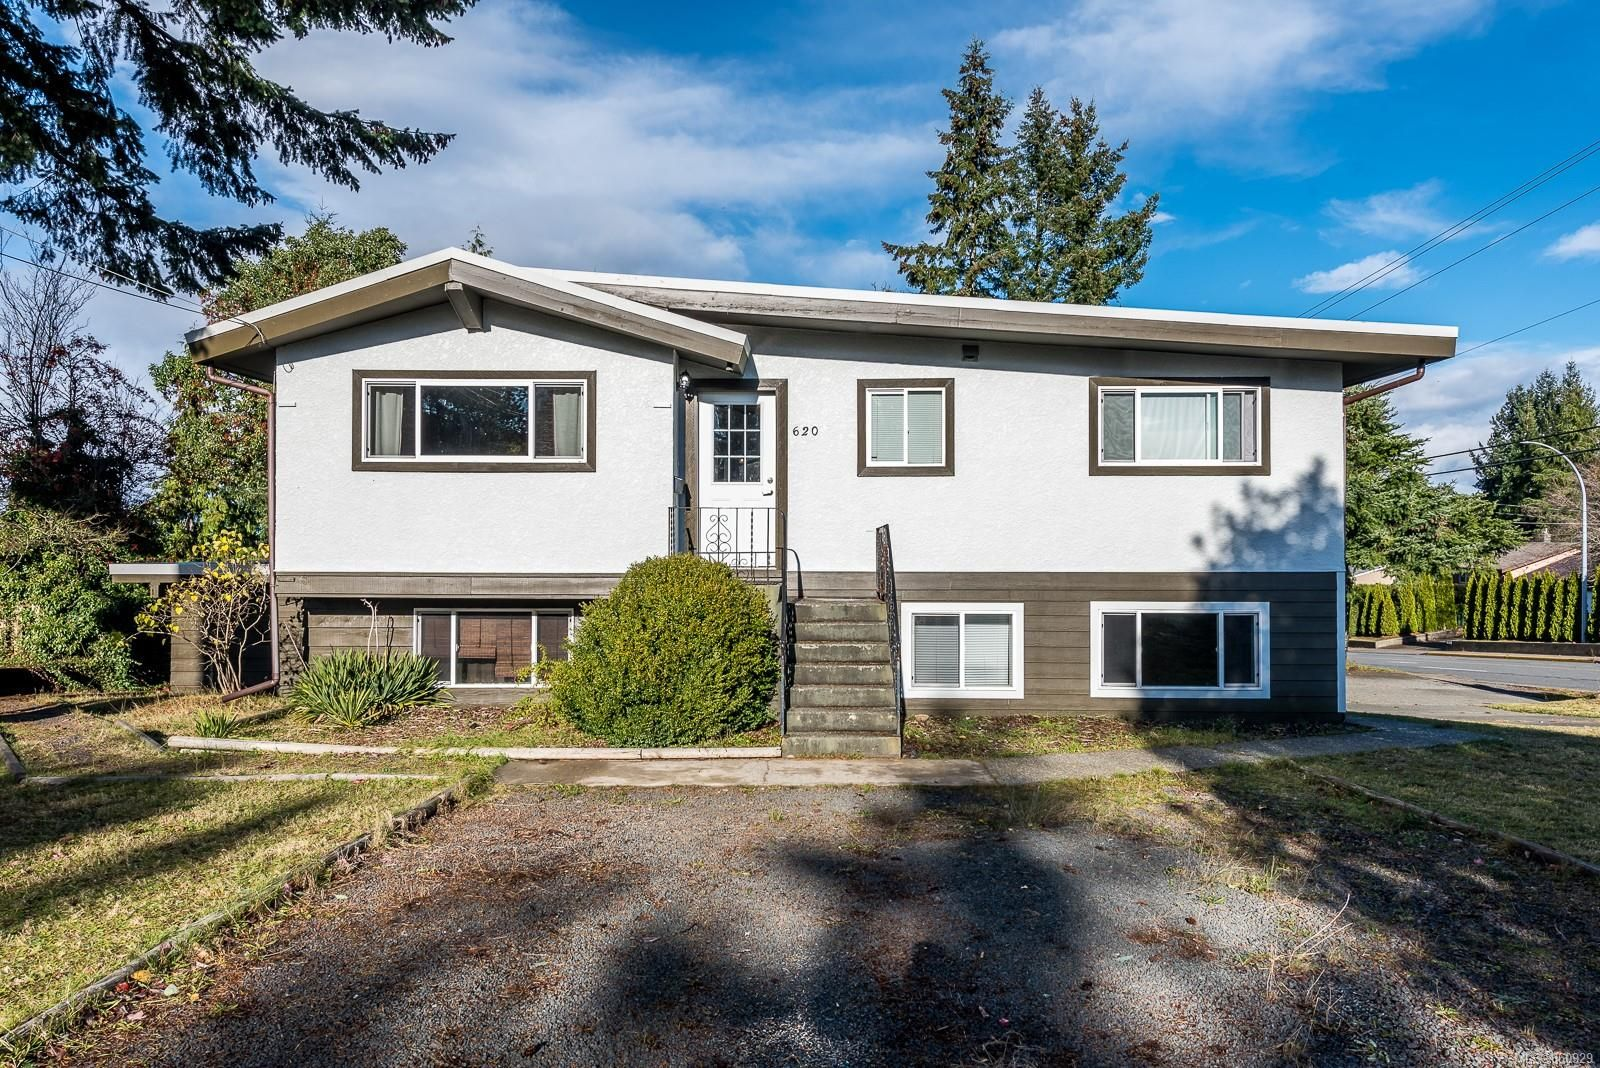 Main Photo: 620 Pinecrest Rd in : CR Campbell River Central House for sale (Campbell River)  : MLS®# 860929